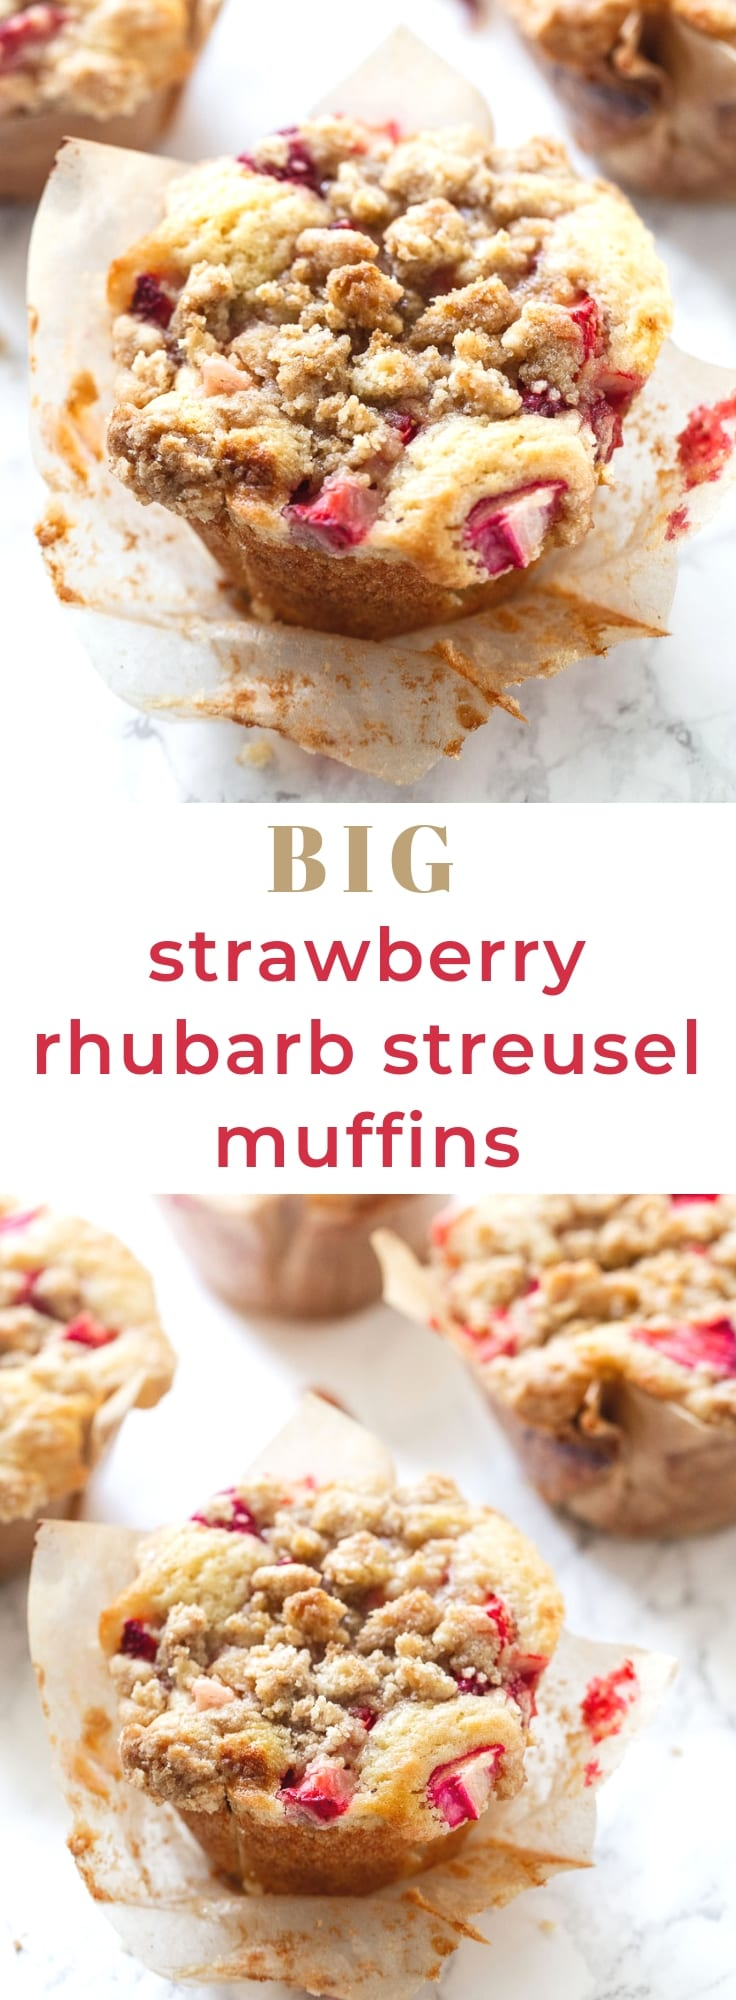 Big Strawberry Rhubarb Buttermilk Muffins with Brown Sugar Streusel